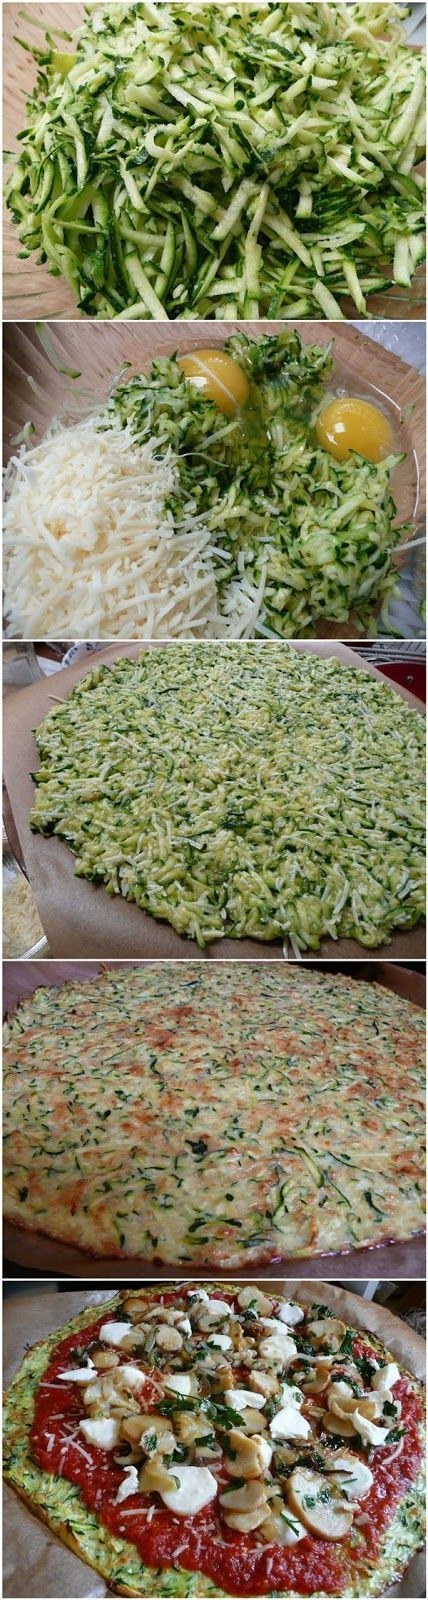 Zucchini Crust Pizza Recipe A Lower Calorie, Lower Carb Choice For Pizza!  #pizza #food